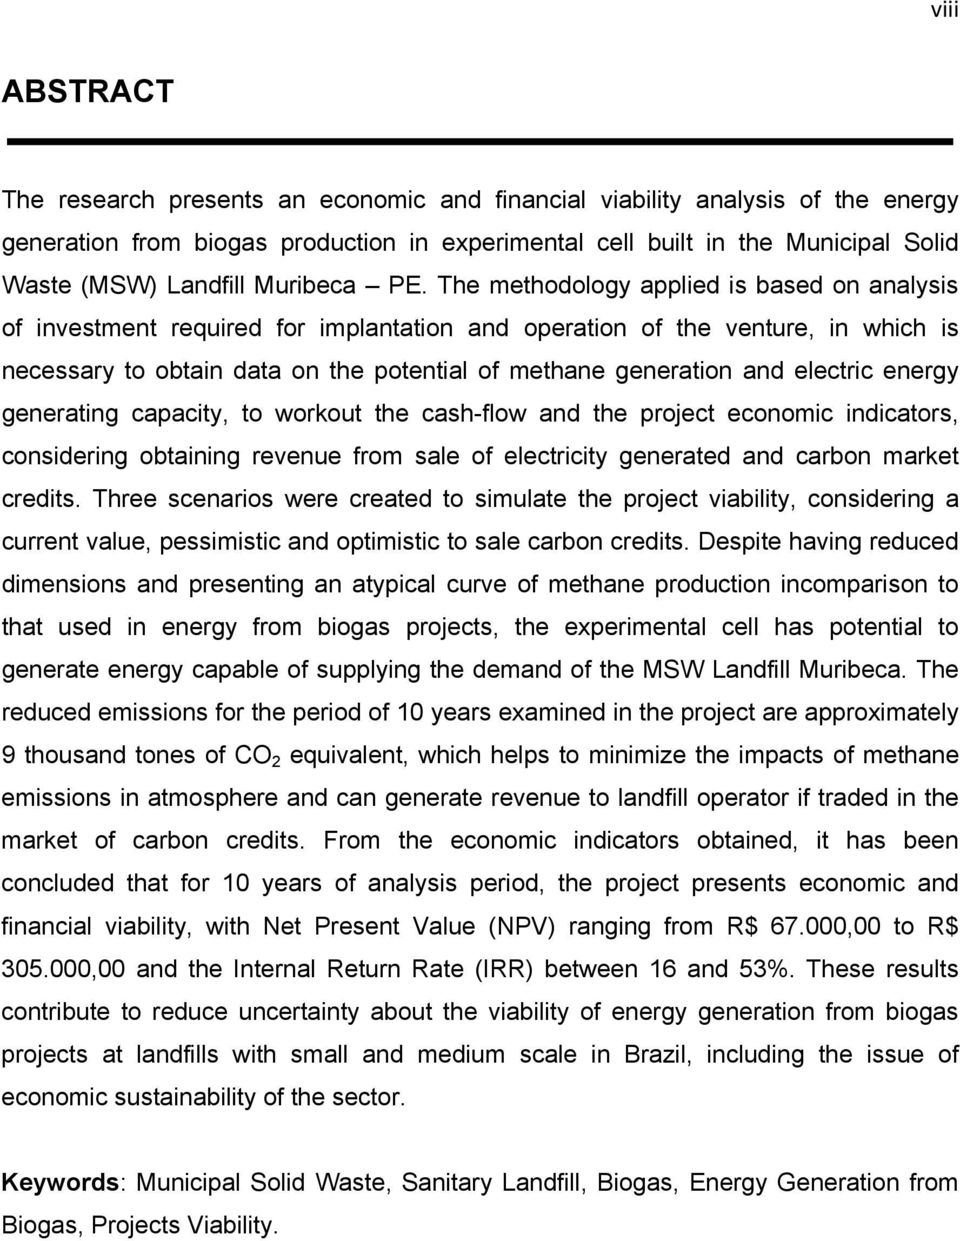 The methodology applied is based on analysis of investment required for implantation and operation of the venture, in which is necessary to obtain data on the potential of methane generation and